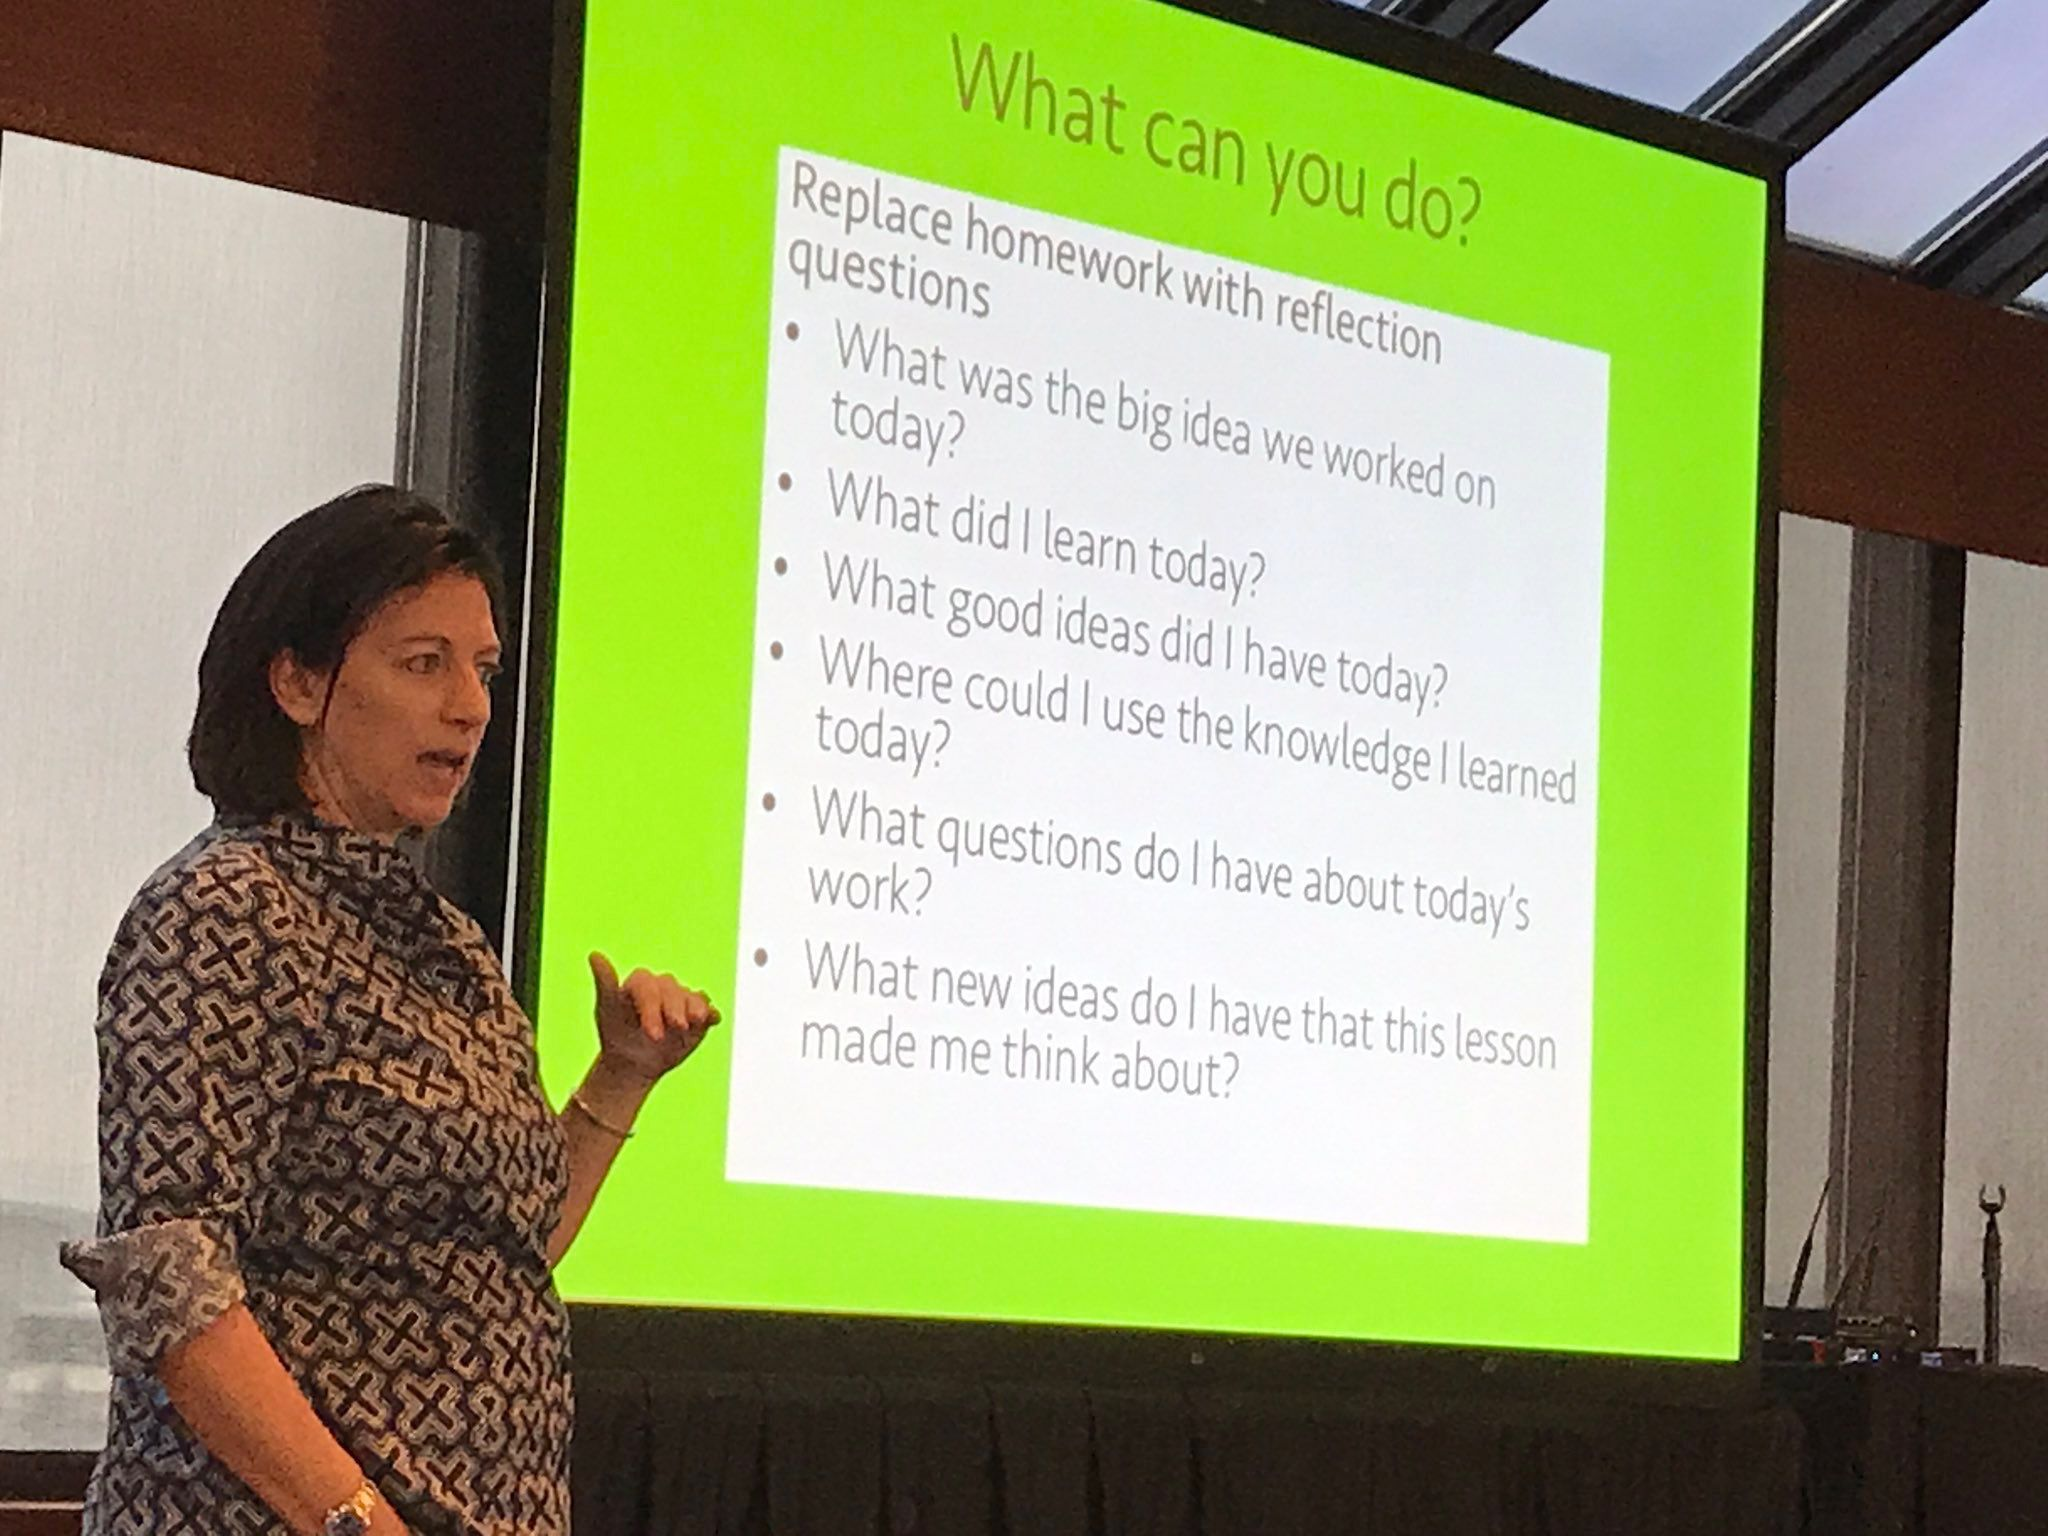 Homework Reflection Questions From Jo Boaler